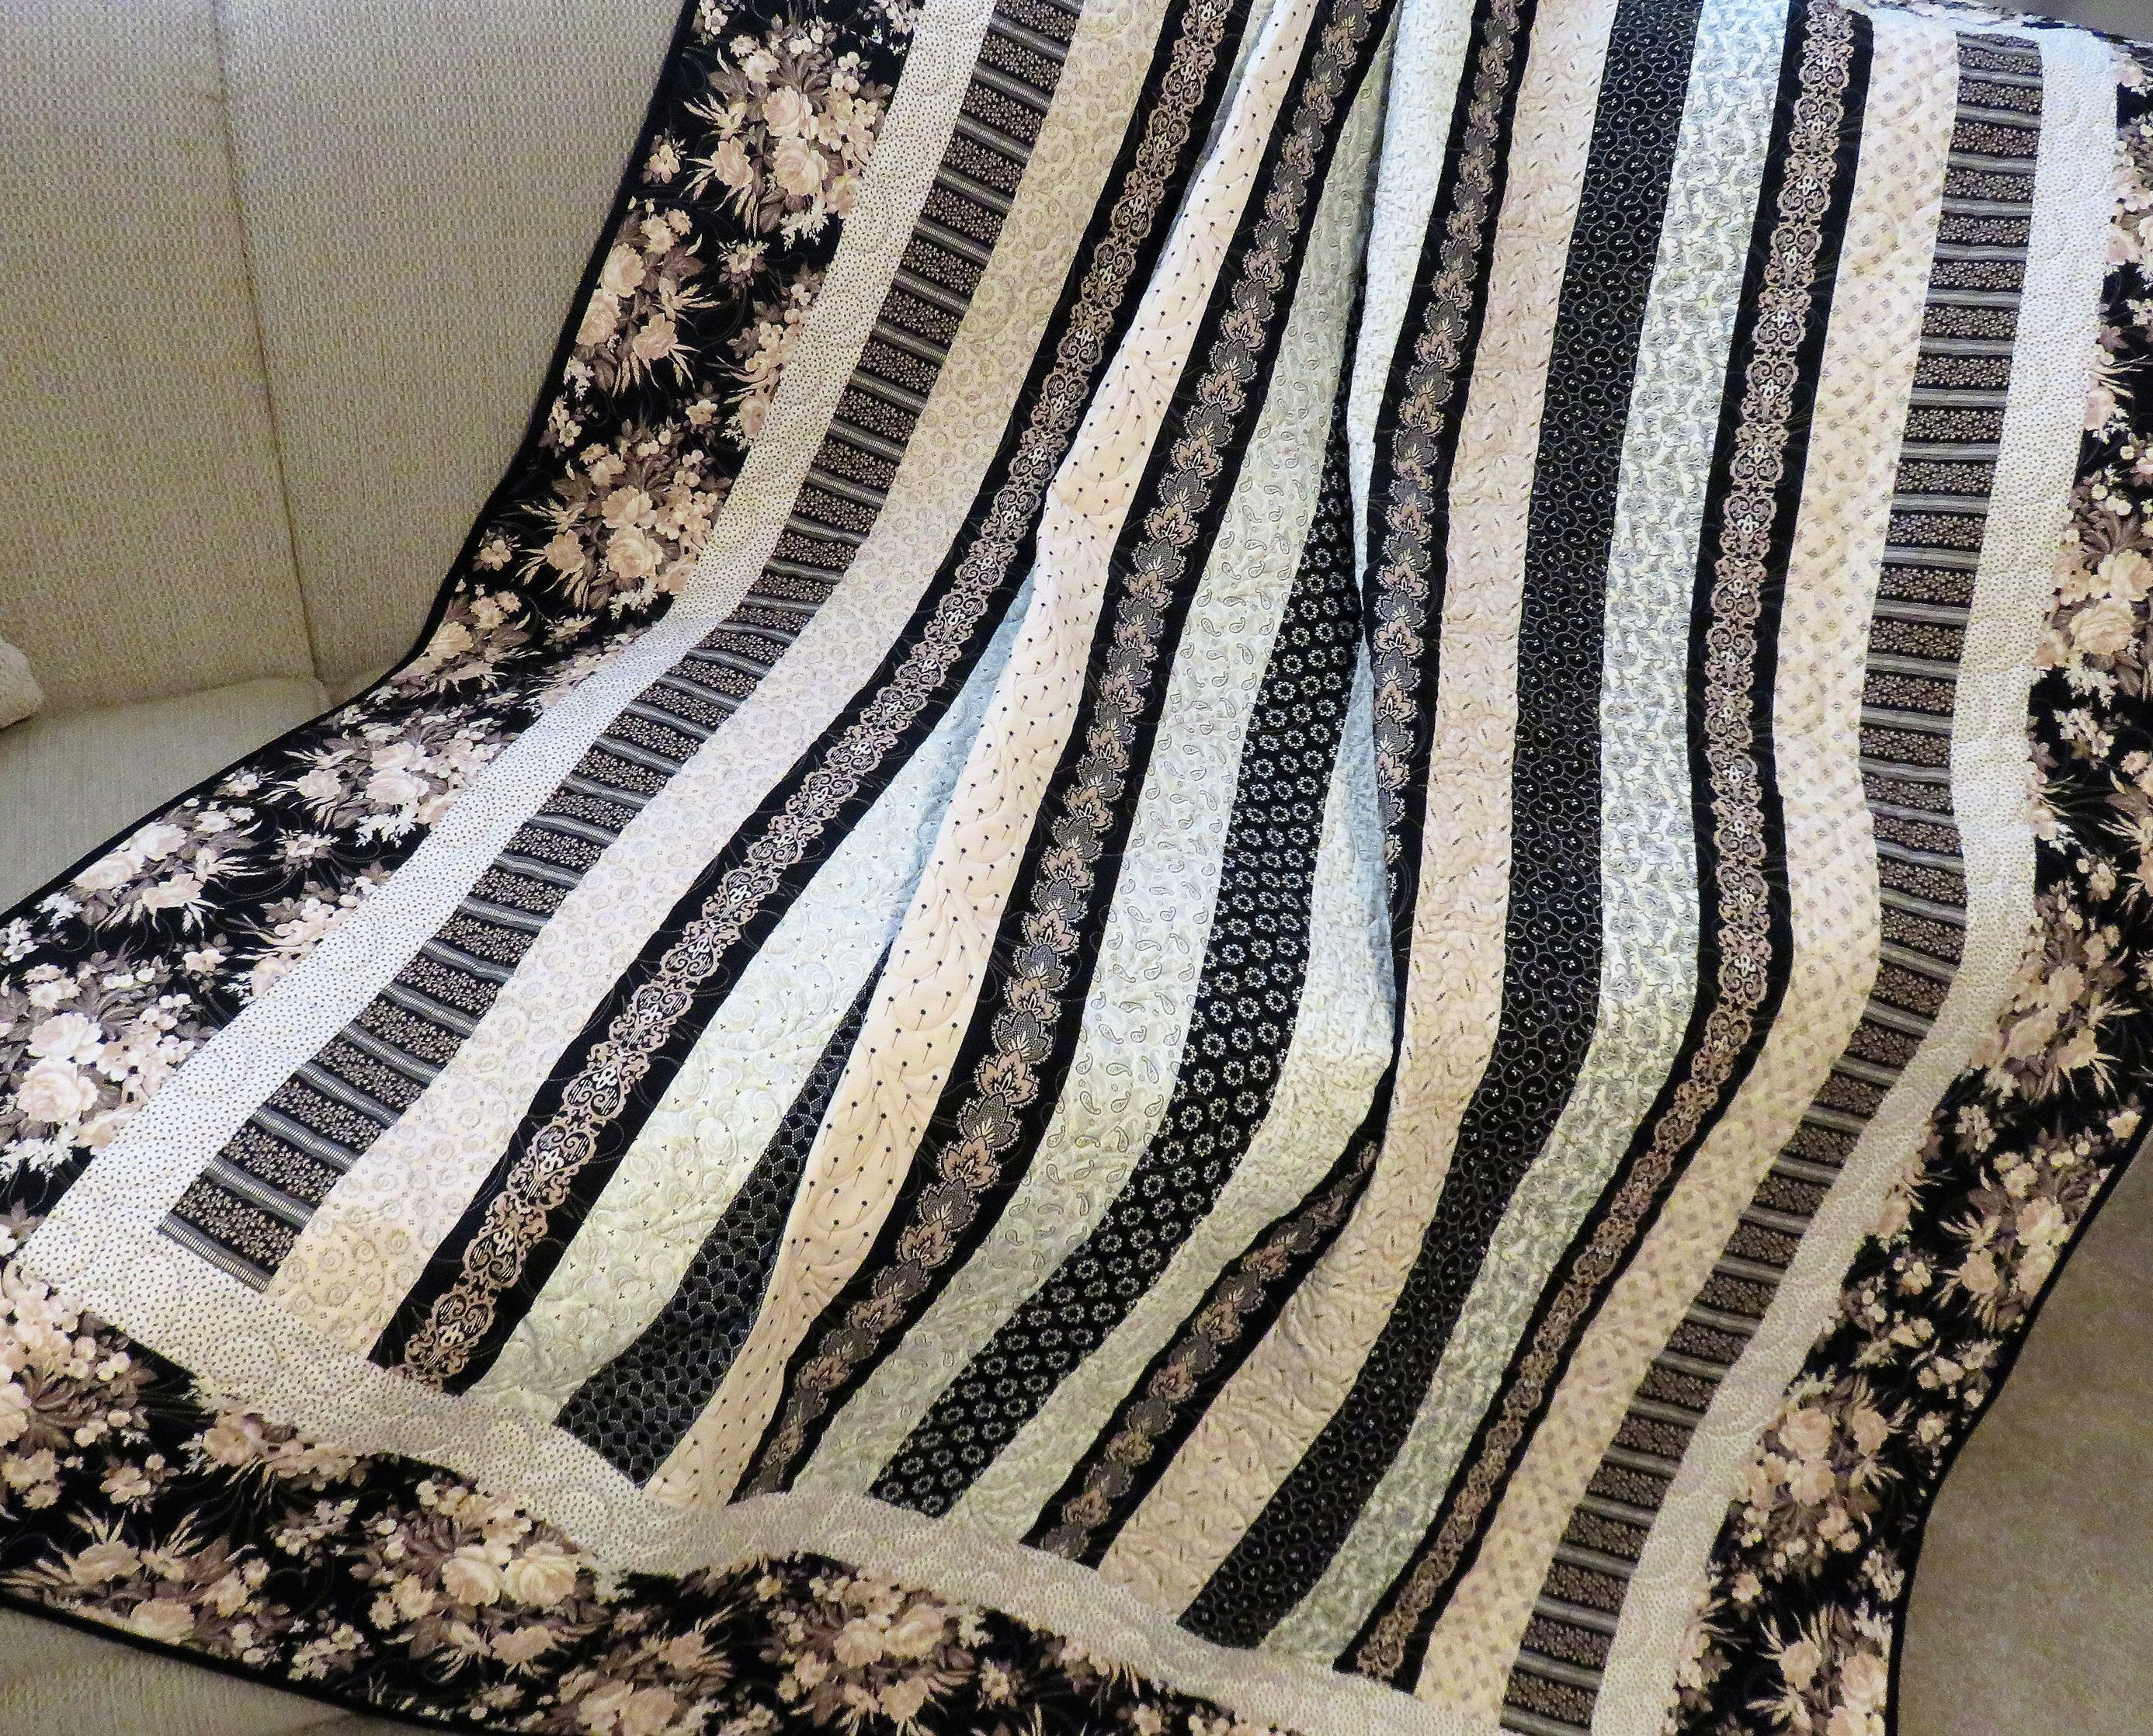 Sensational Handmade Throw Blanket For Sale Quilt For Sale Lap Blanket Bralicious Painted Fabric Chair Ideas Braliciousco